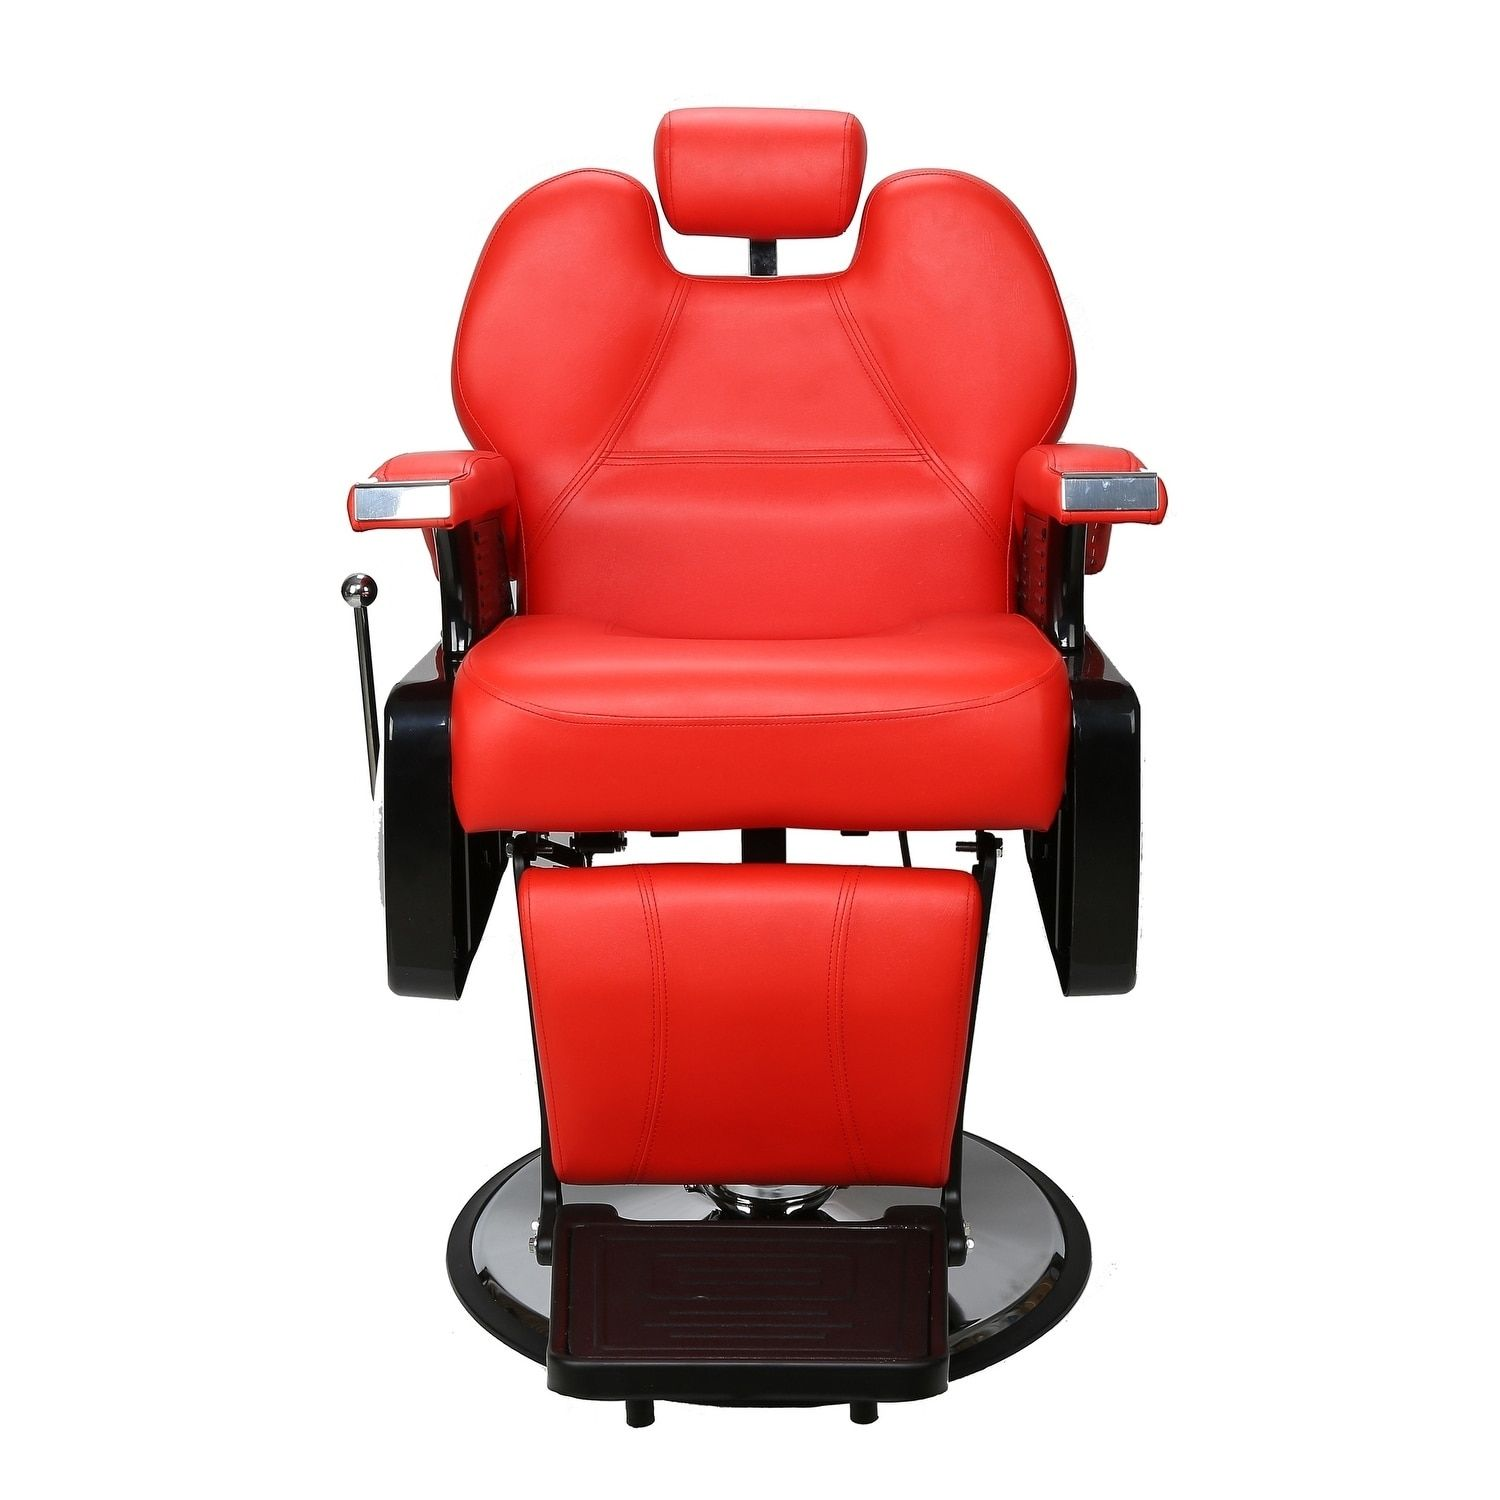 Red Barber Chair Barberpub Hydraulic Recline Red Barber And Salon Chair Red